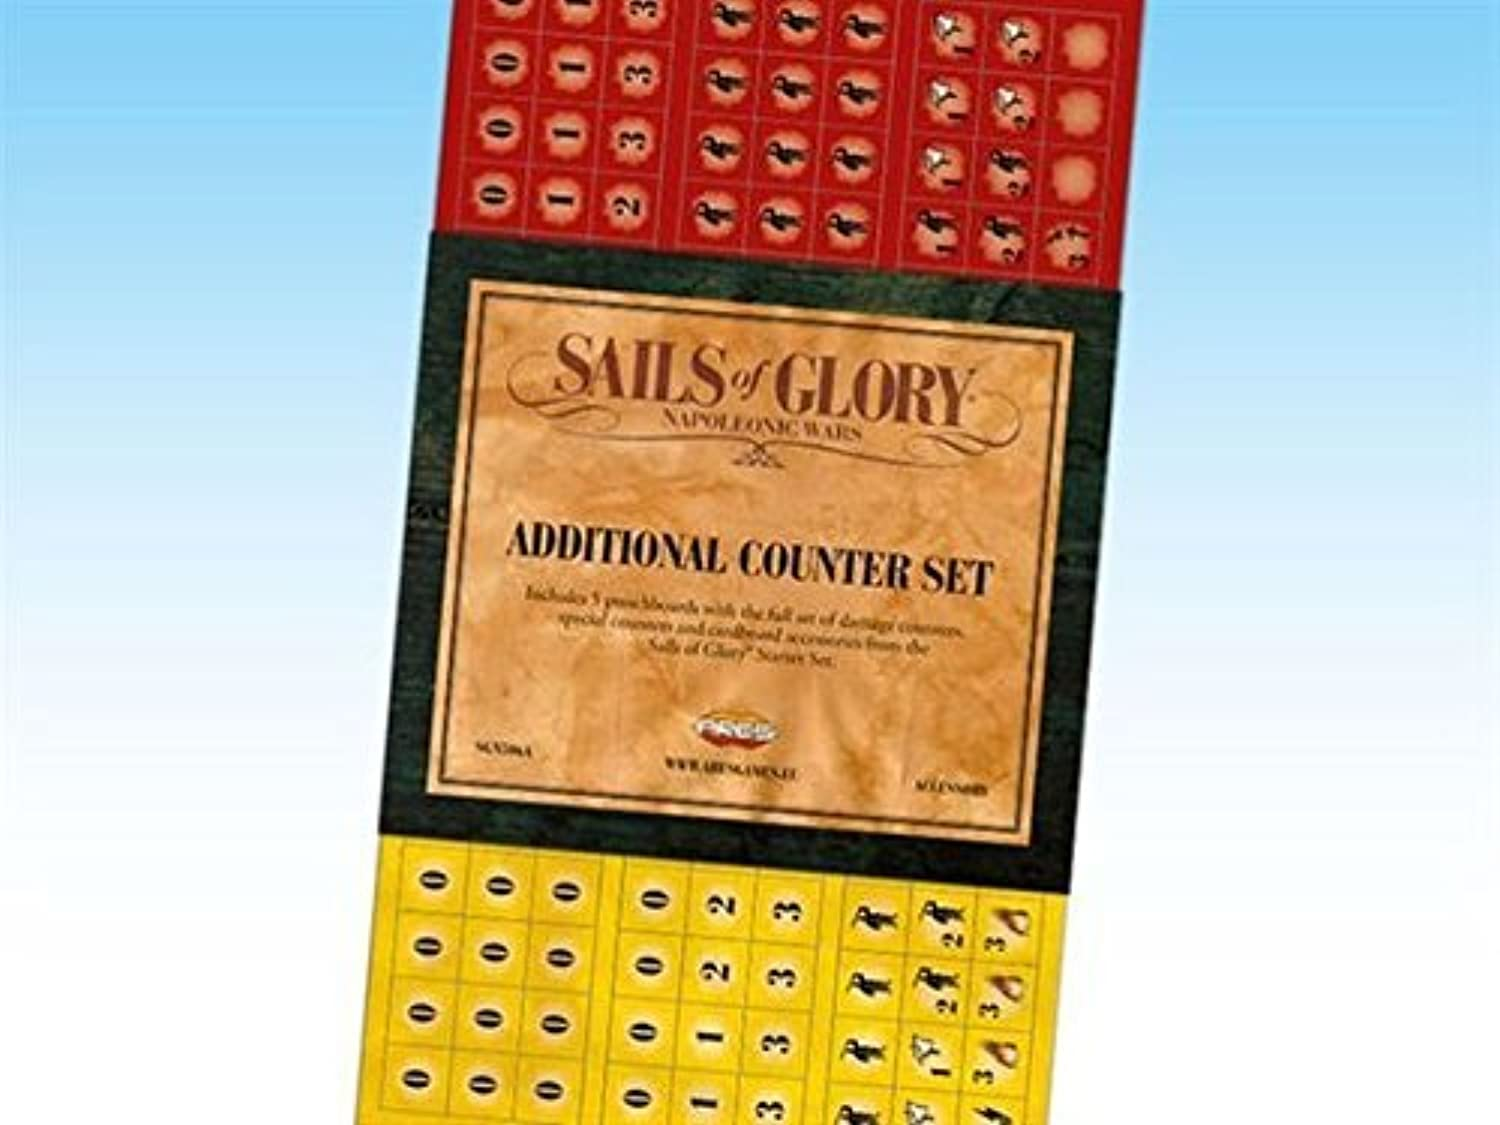 Sails of Glory  Counter Set by Ares Games